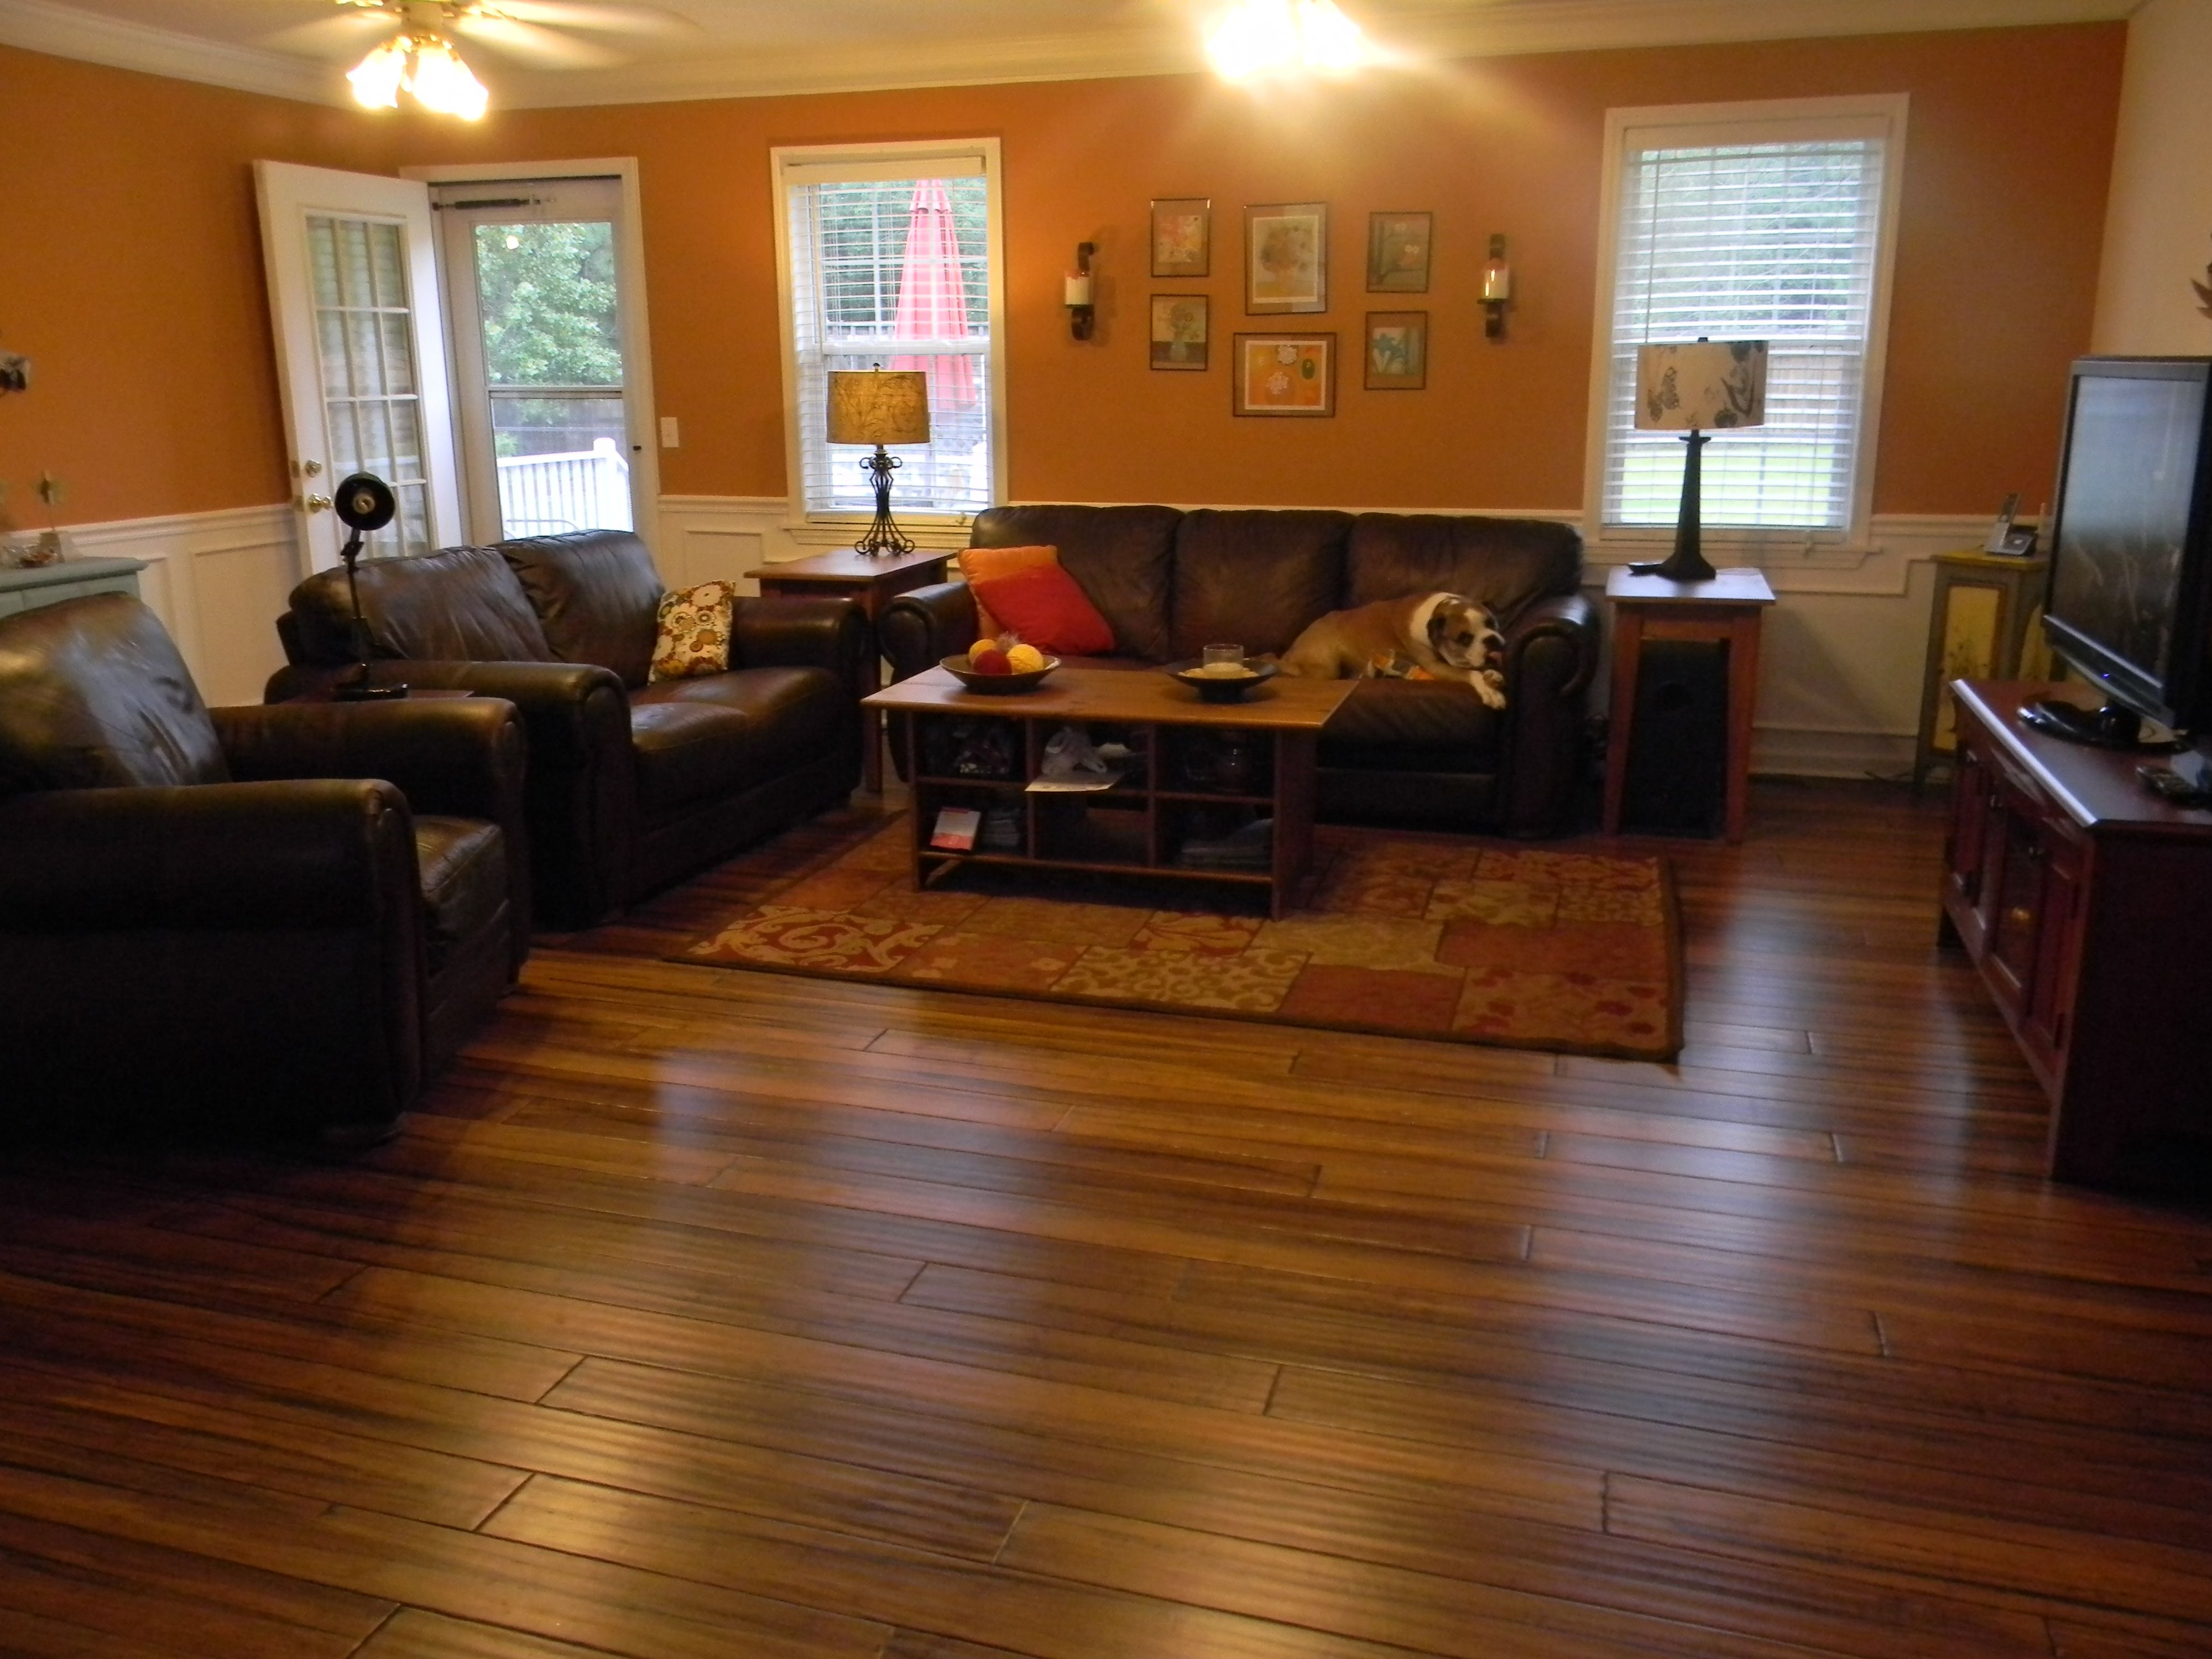 Our New Hardwood Floors That We Installed Ourselves Bamboo Flooring Hardwood Floors Flooring